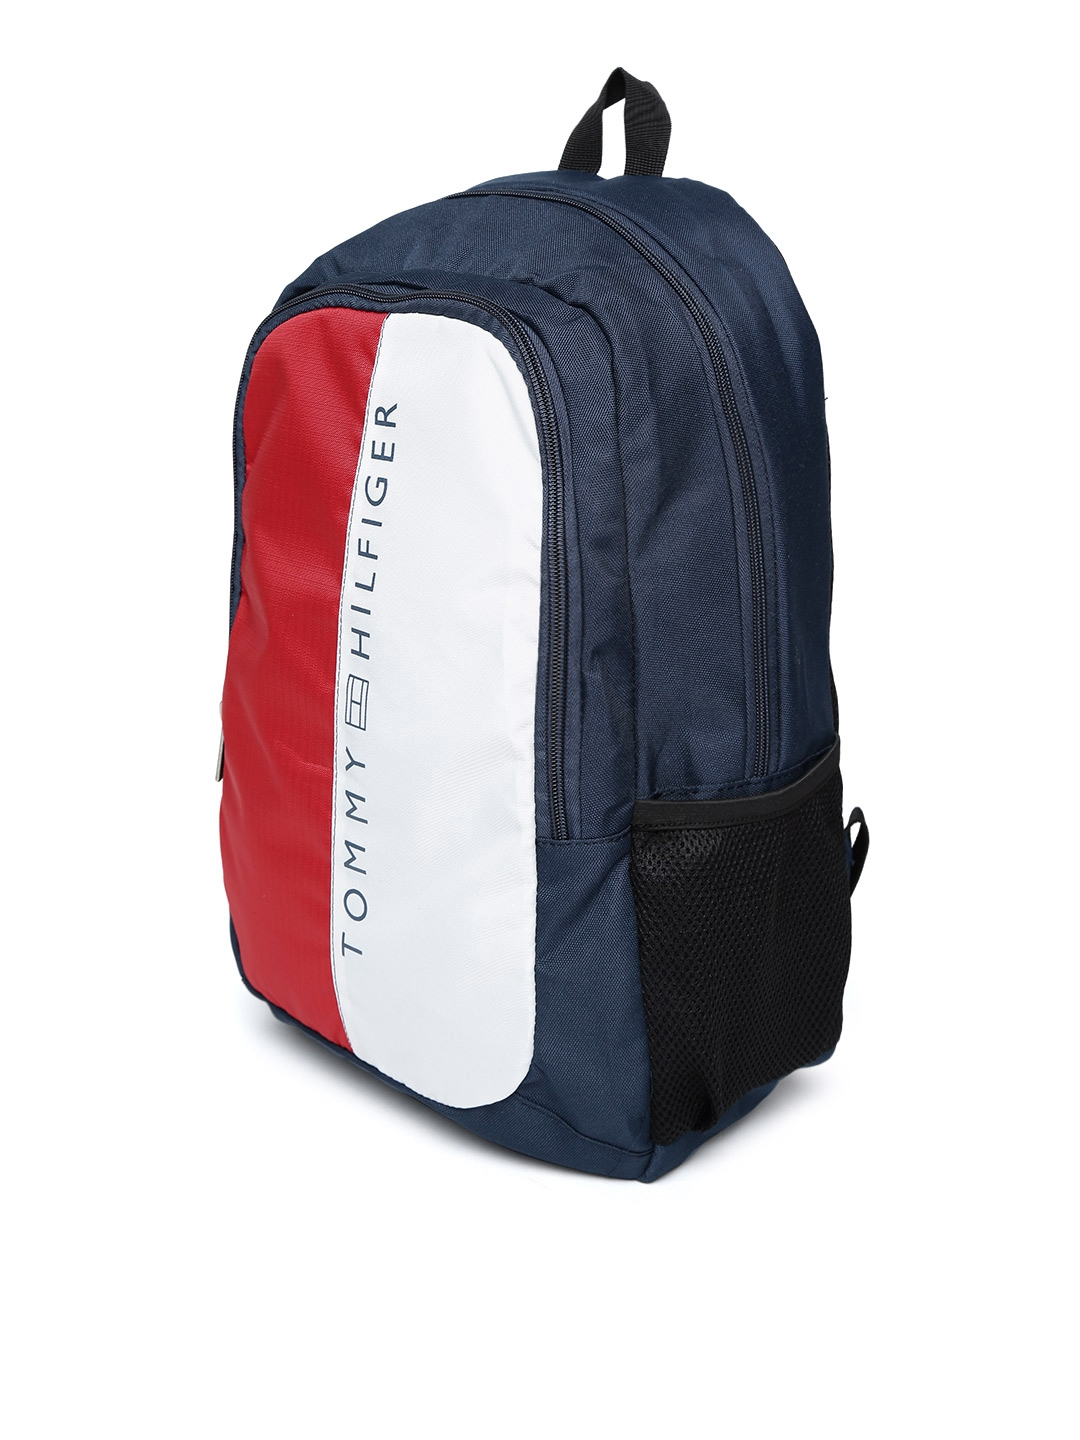 e8056dcf8 Buy Tommy Hilfiger Unisex Navy   Red Colourblocked Backpack ...